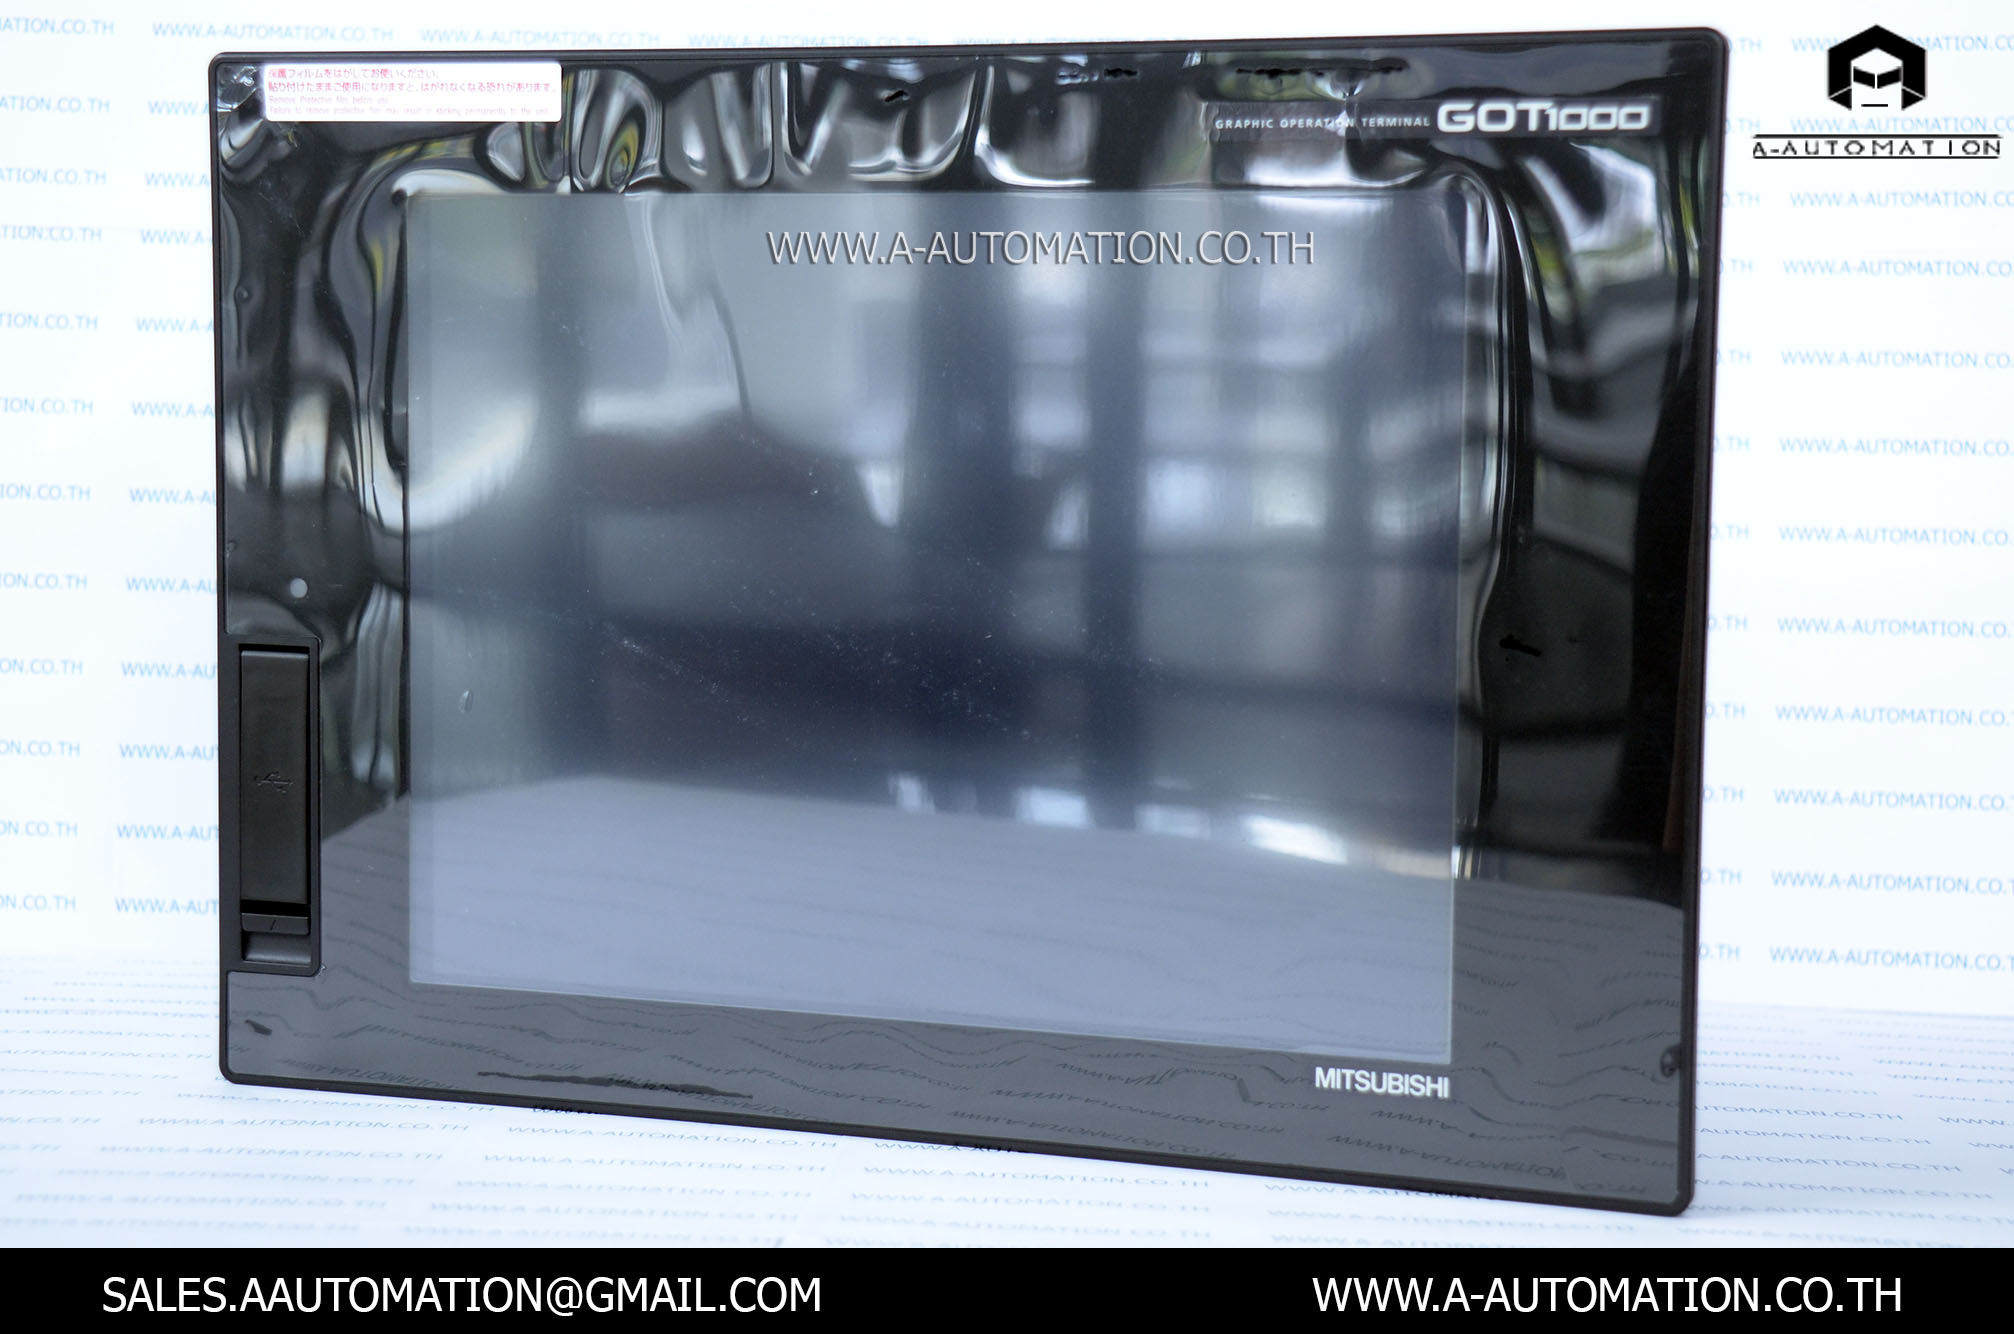 TOUCH SCREEN MODEL:GT1675M-STBA,65536 สี 10.4 นิ้ว [MITSUBISHI]